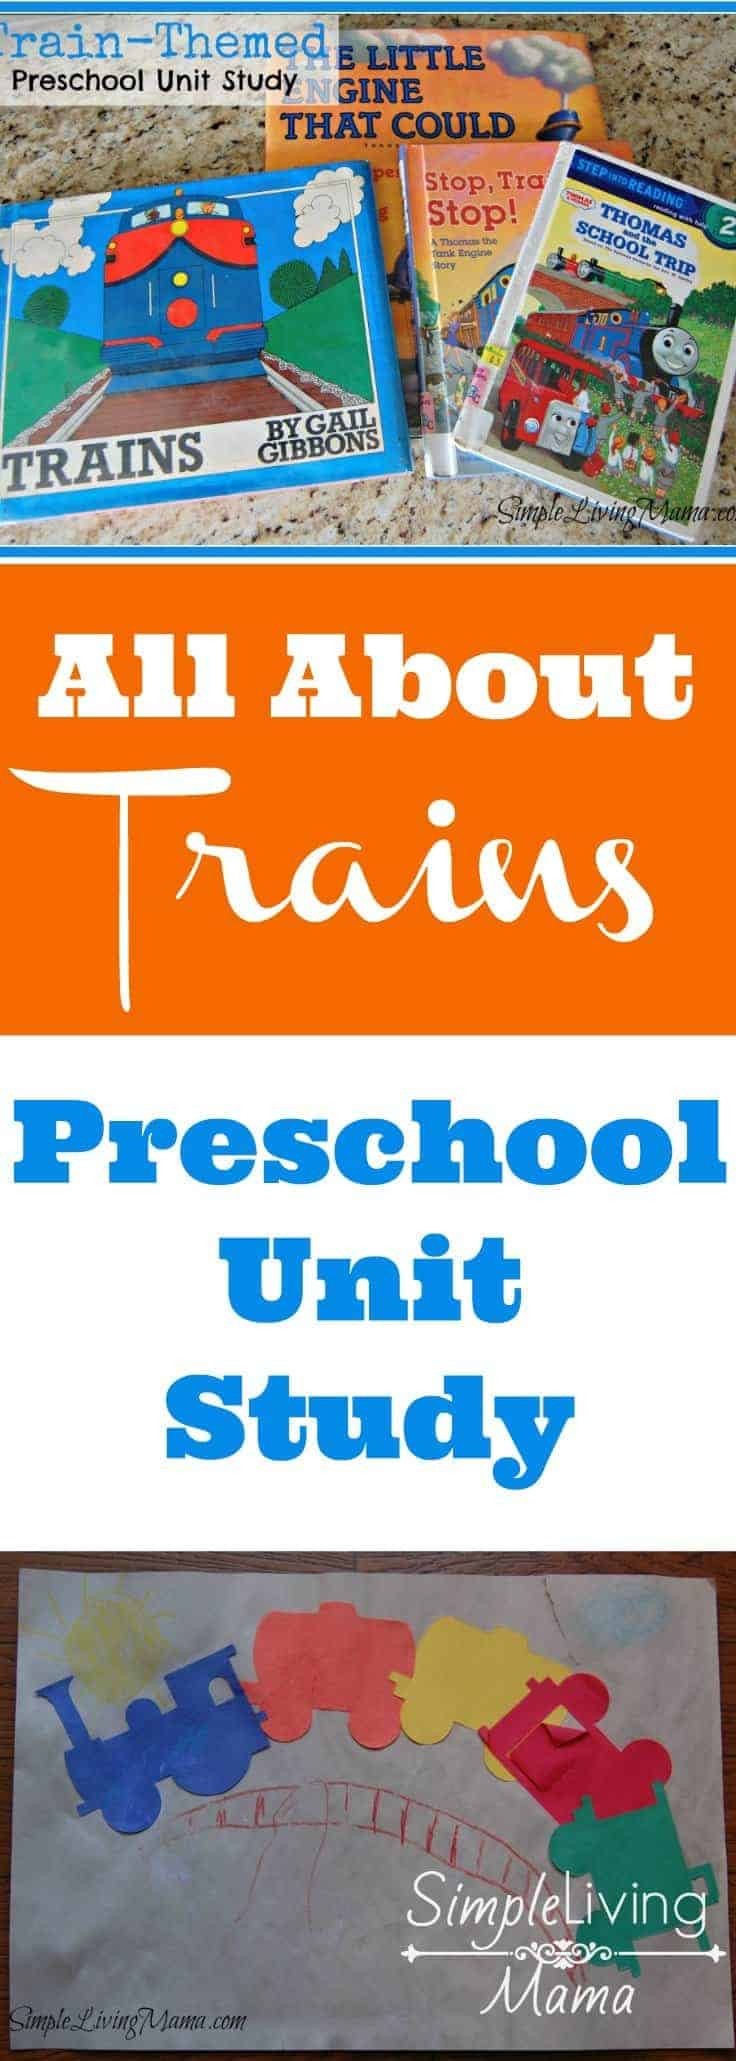 All About Trains - A preschool unit study on trains!